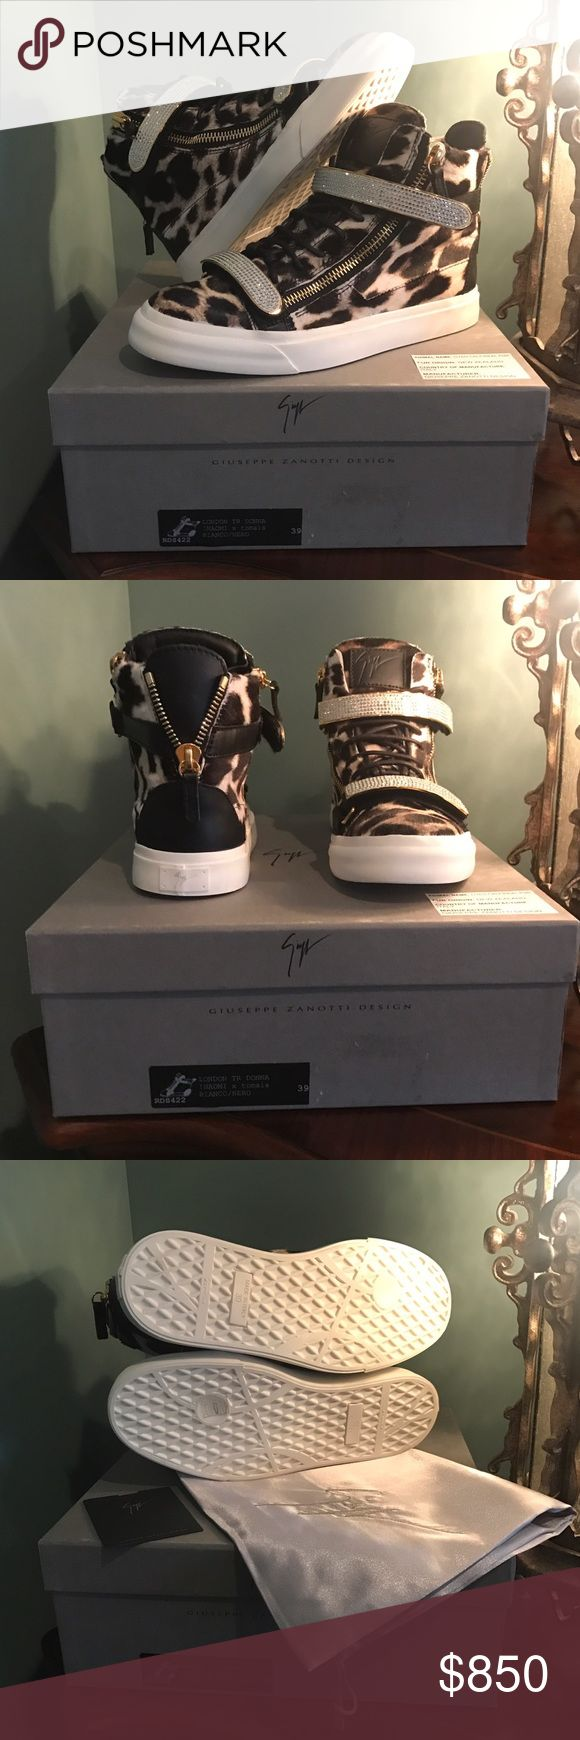 GIUSEPPE ZANOTTI sneakers Leopard print calf hair Giuseppe Zanotti high top sneakers in black & white. Crystal embellished grip straps. Exposed zipper detail at sides & back. Lace up front with GZ logo patch on tongue. Comes with dust bag & box. 100% authentic/certificate is included. Smoke free 🏡 🆕-never worn Giuseppe Zanotti Shoes Sneakers